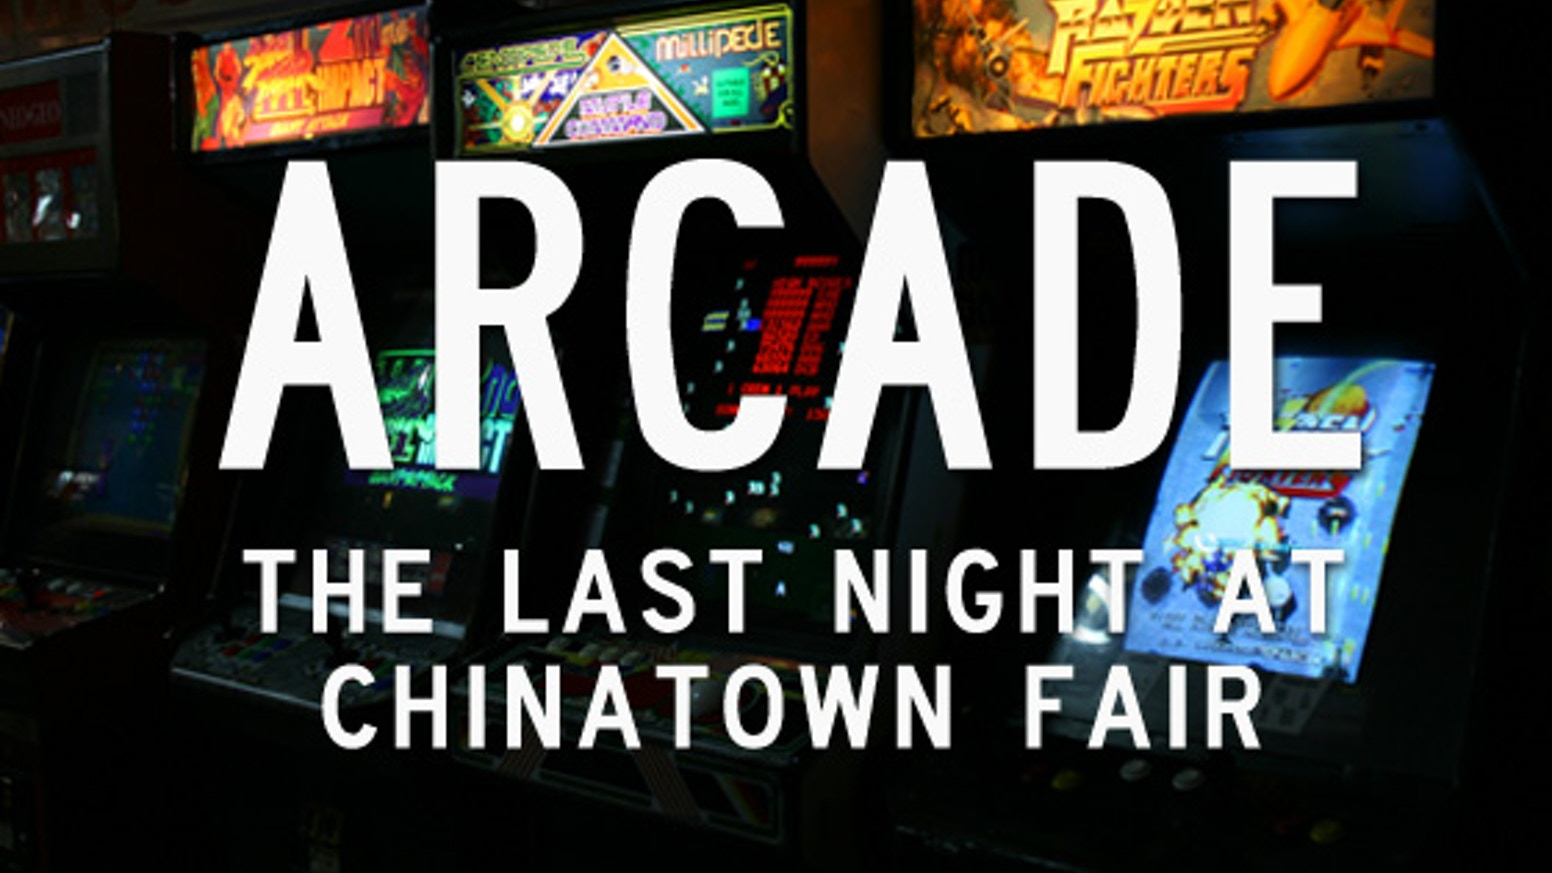 Help us tell the inspiring story of New York's last arcade, Chinatown Fair, and the community that called it home.